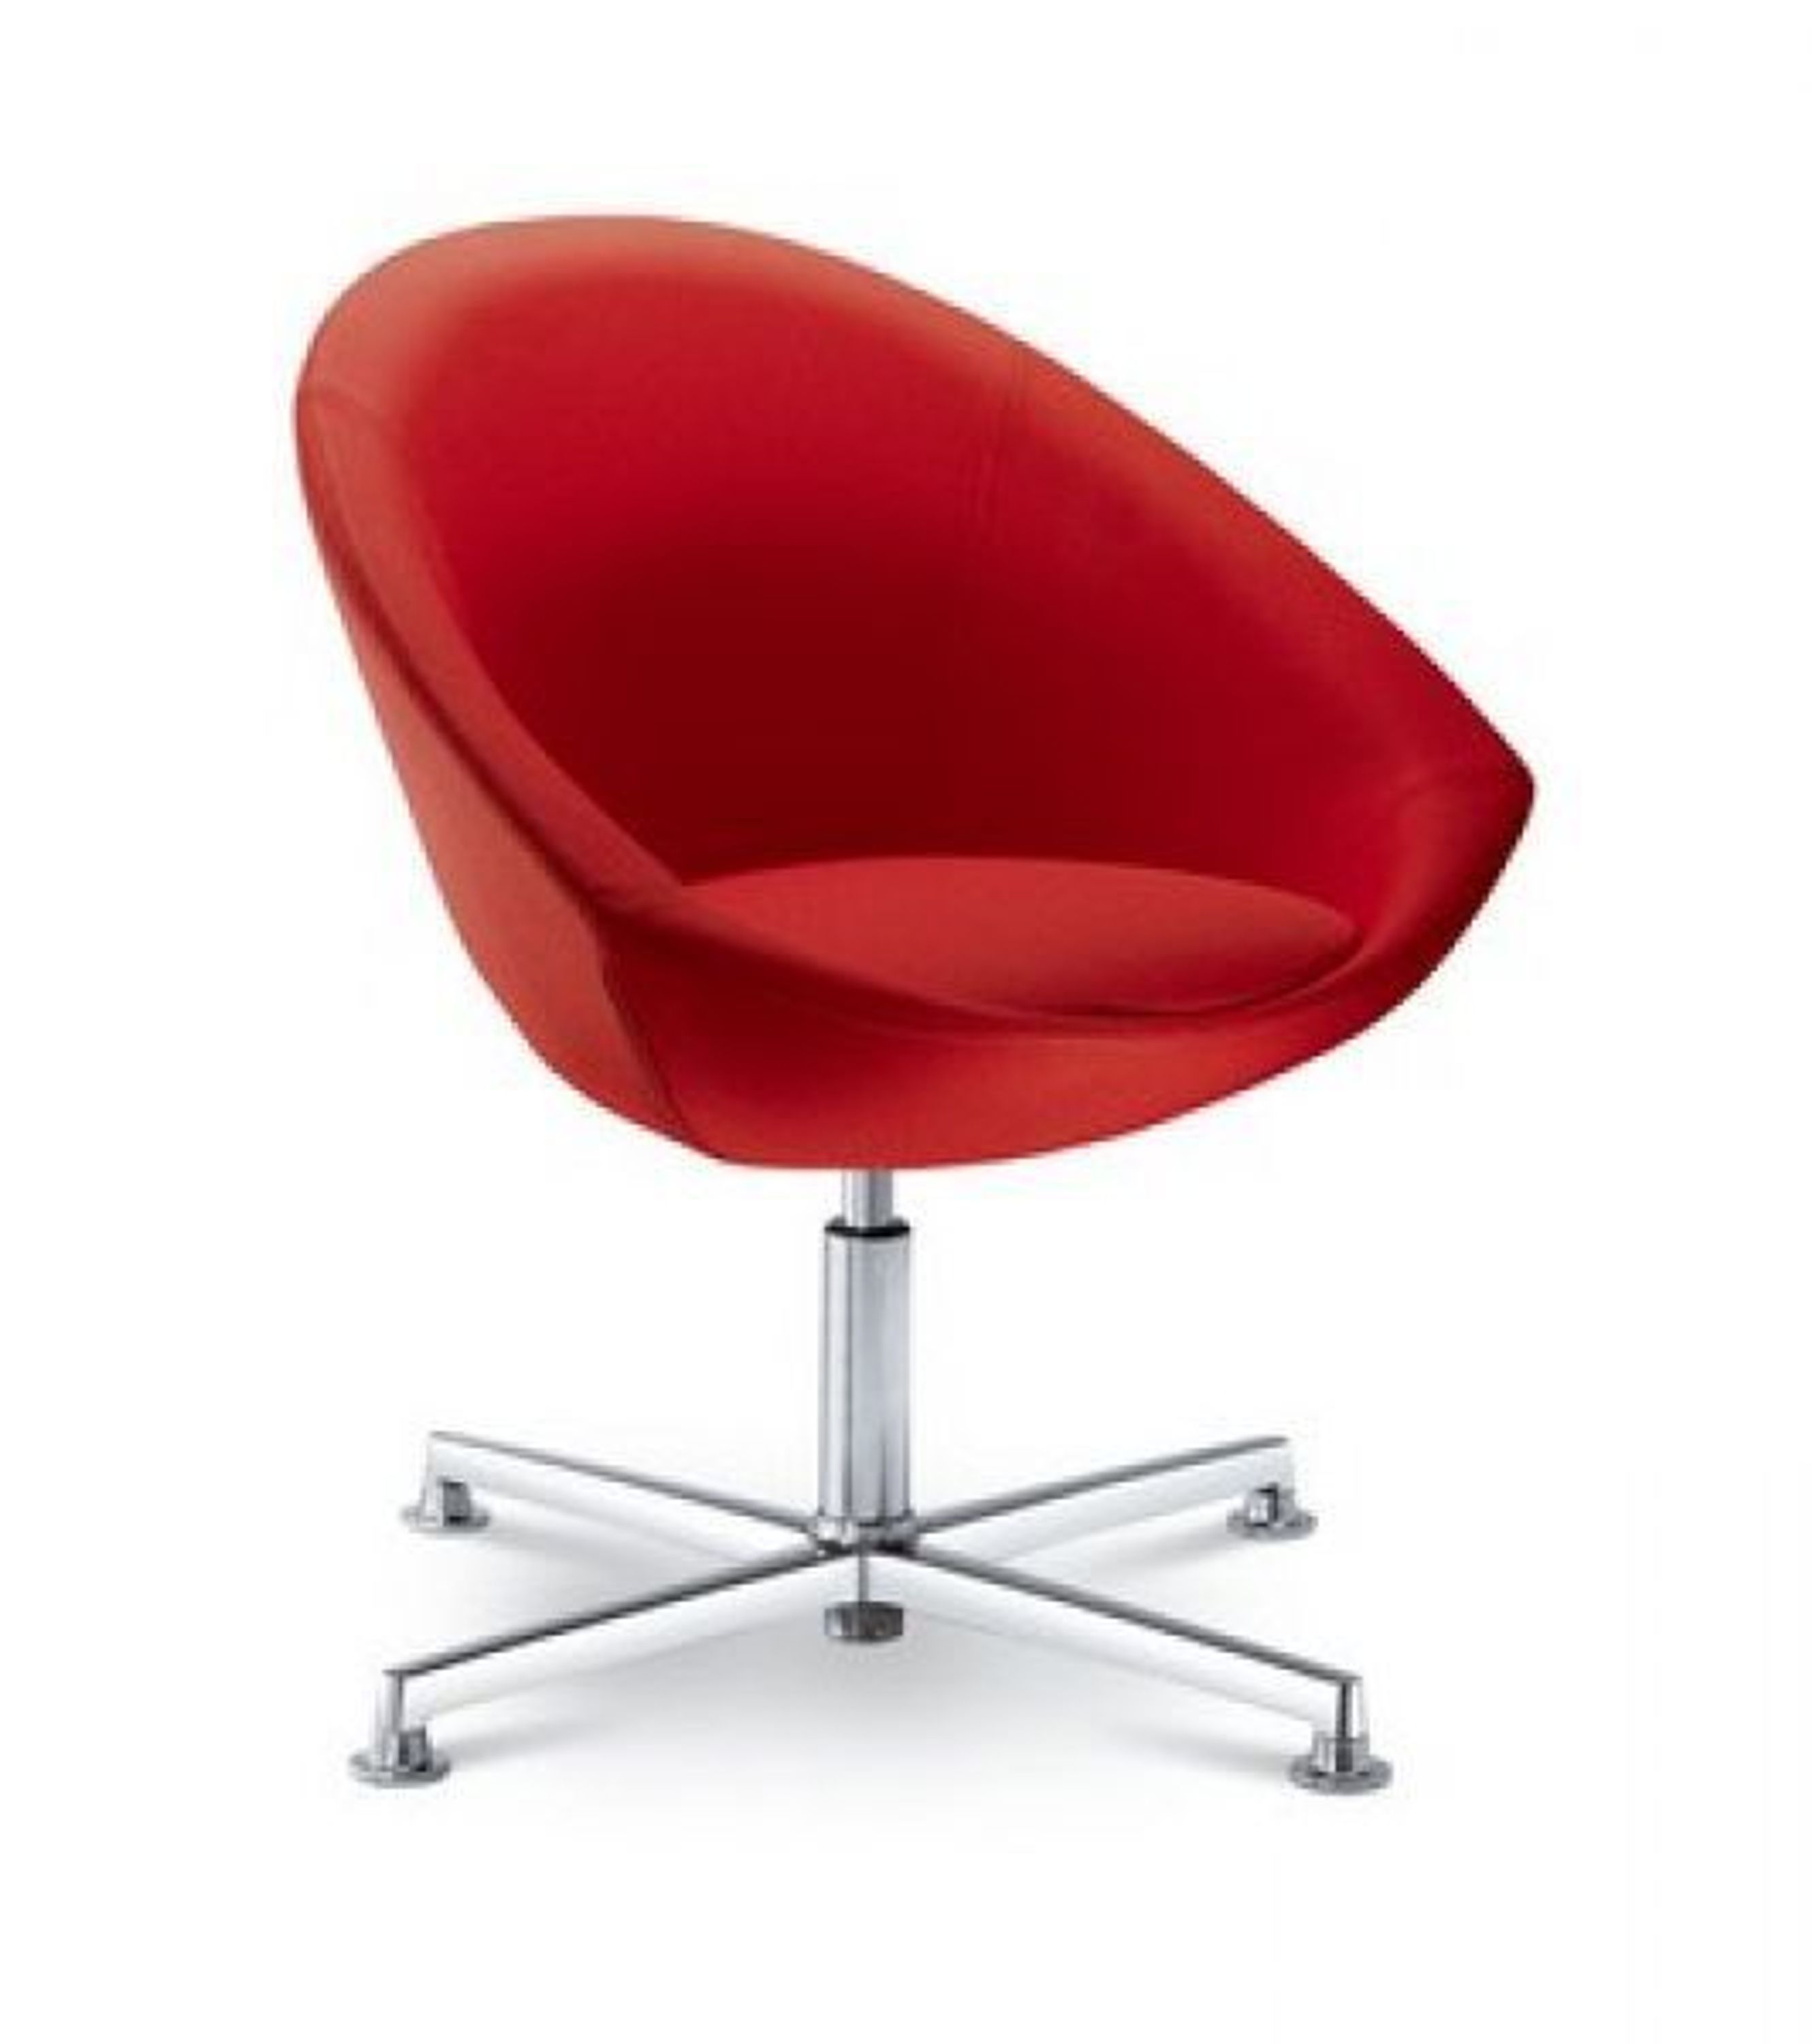 Ld seating mango f30 designer lounge sessel vollgepolstert for Xxl sessel rund